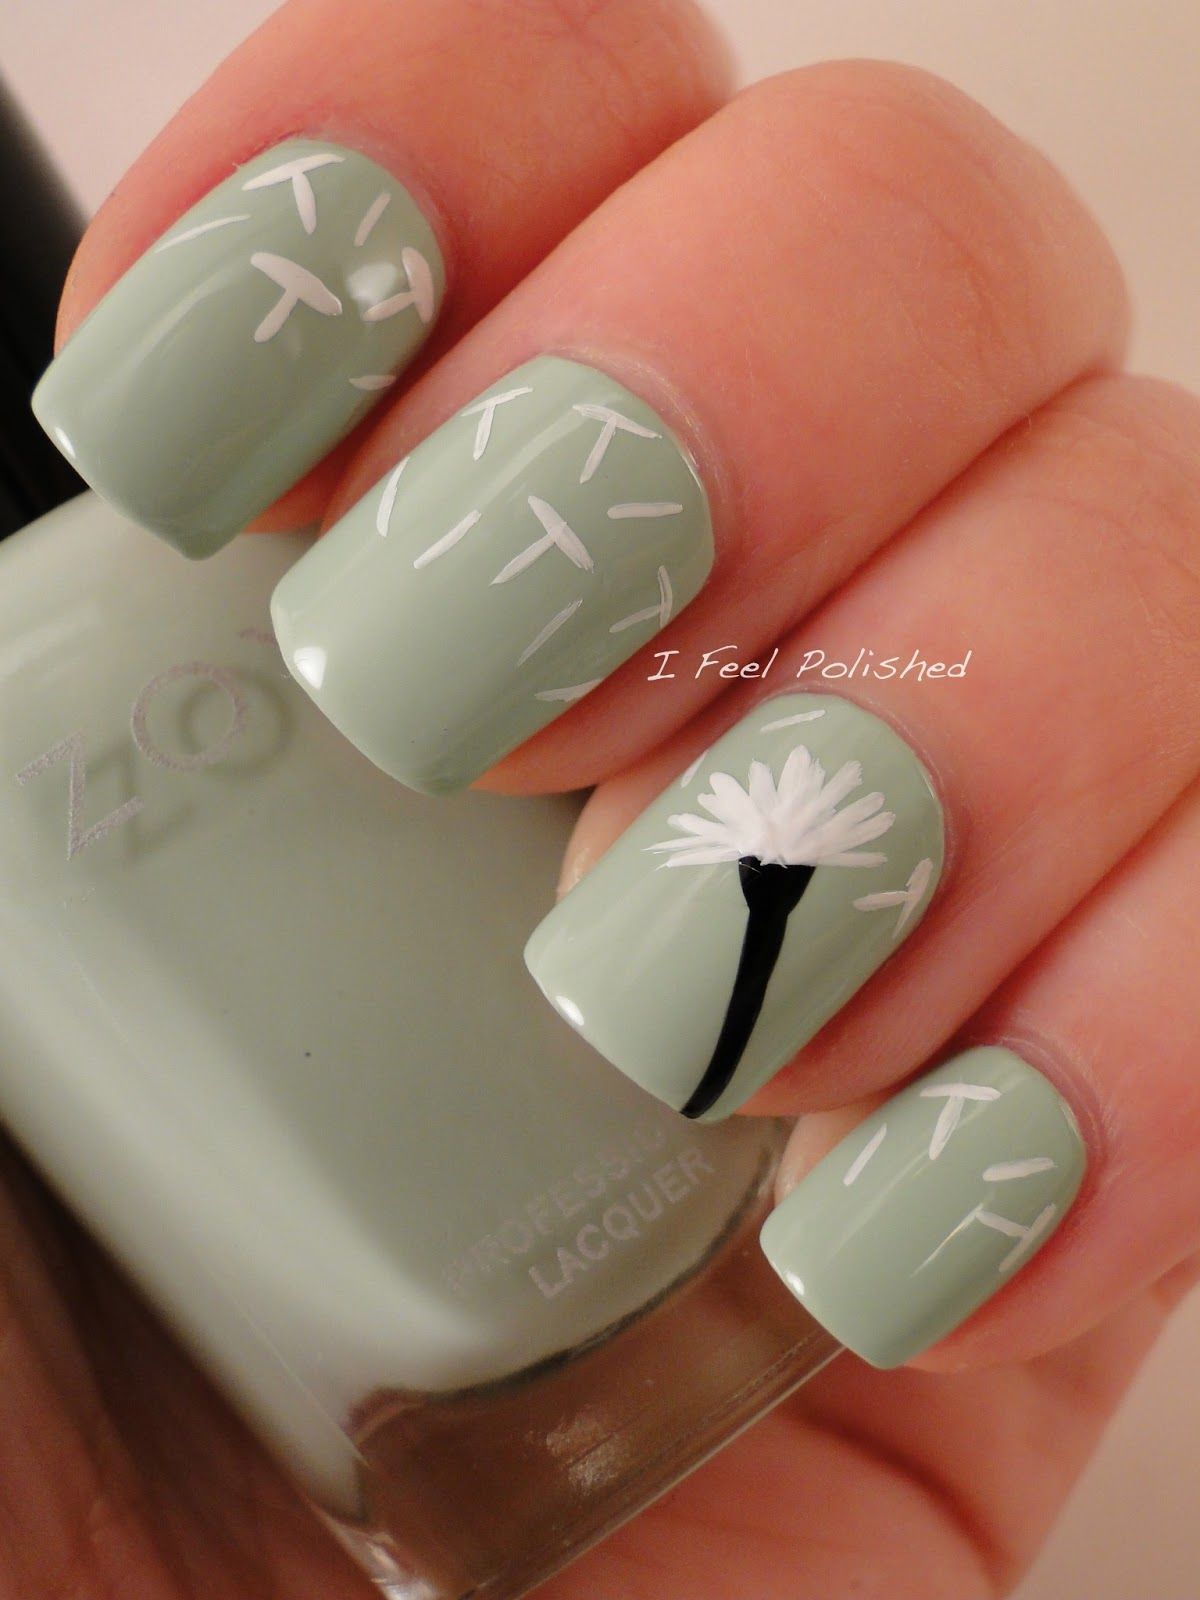 Dandelion Nails featuring Zoya Nail Polish in Neely | Nail Art ...